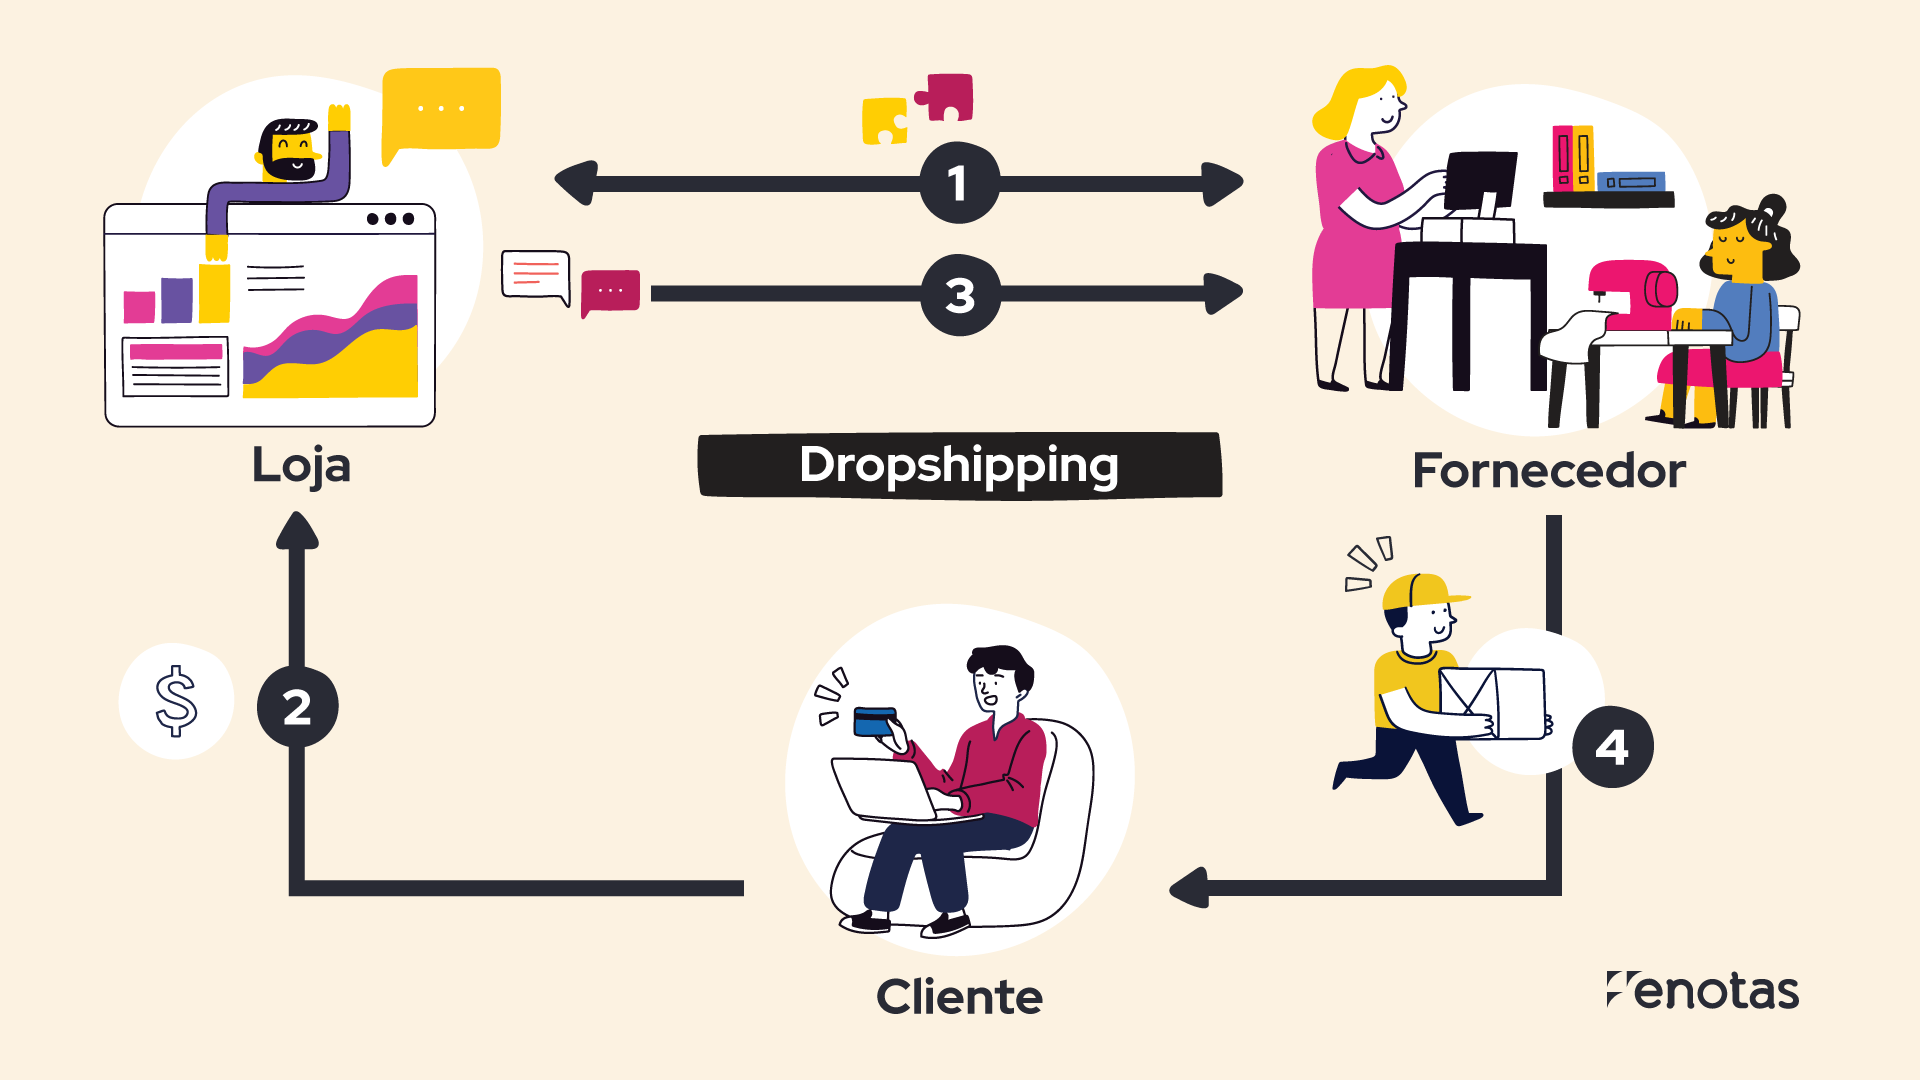 eNotas_Post-Blog_Dropshipping